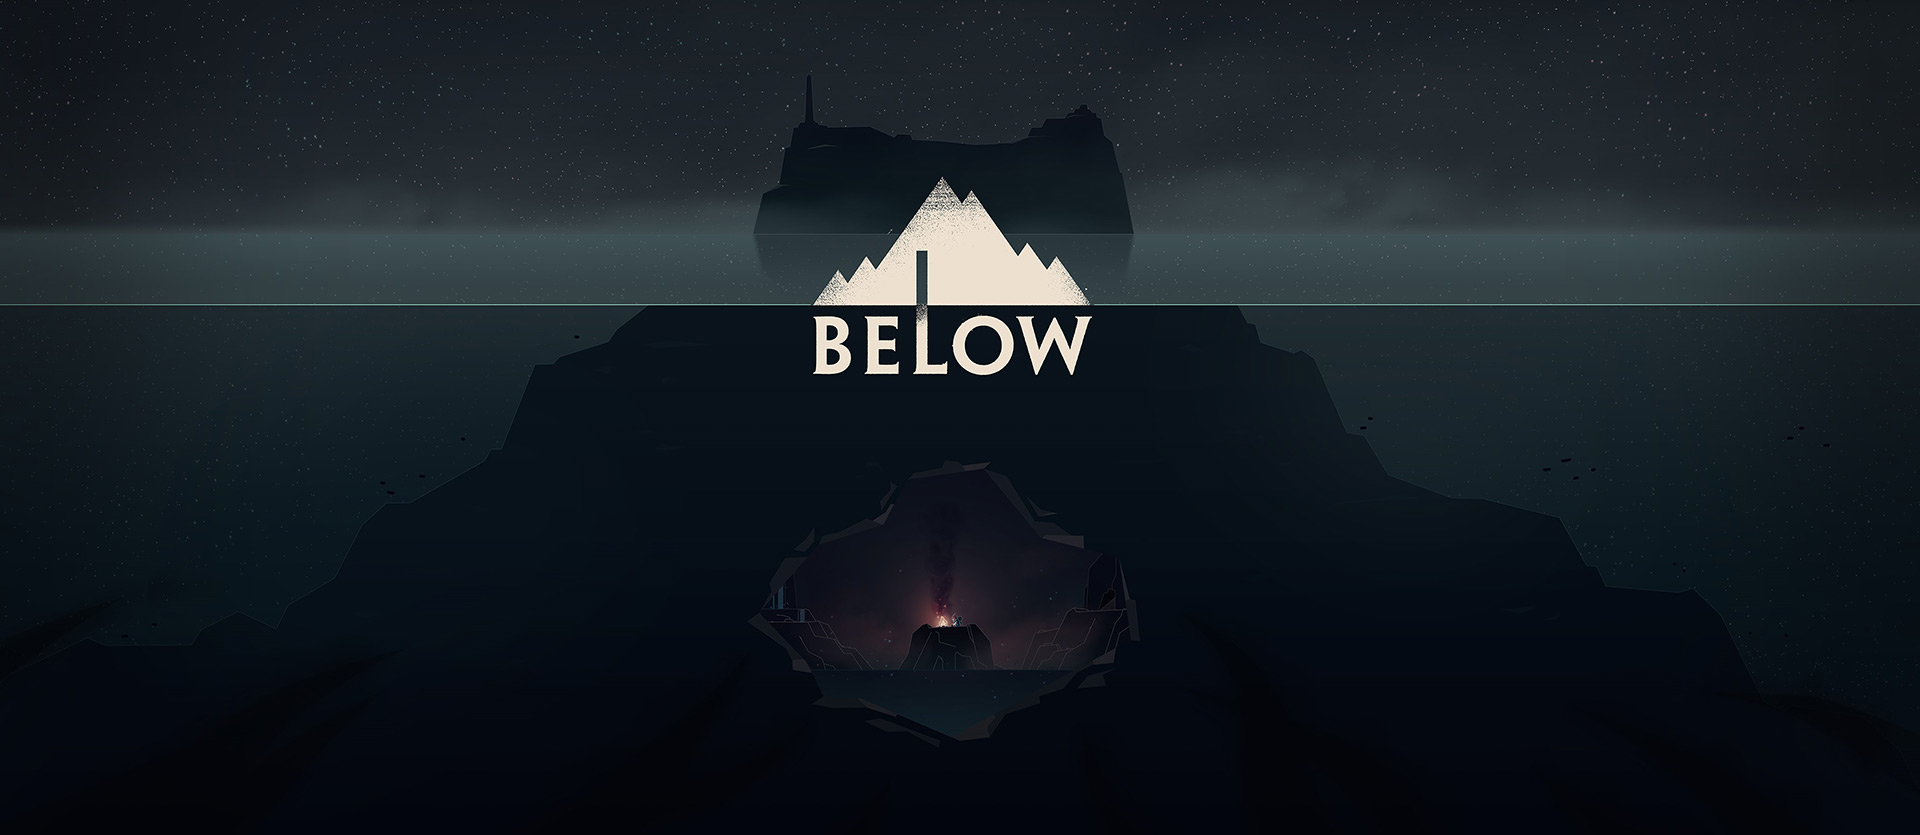 Ada ve Below logosu